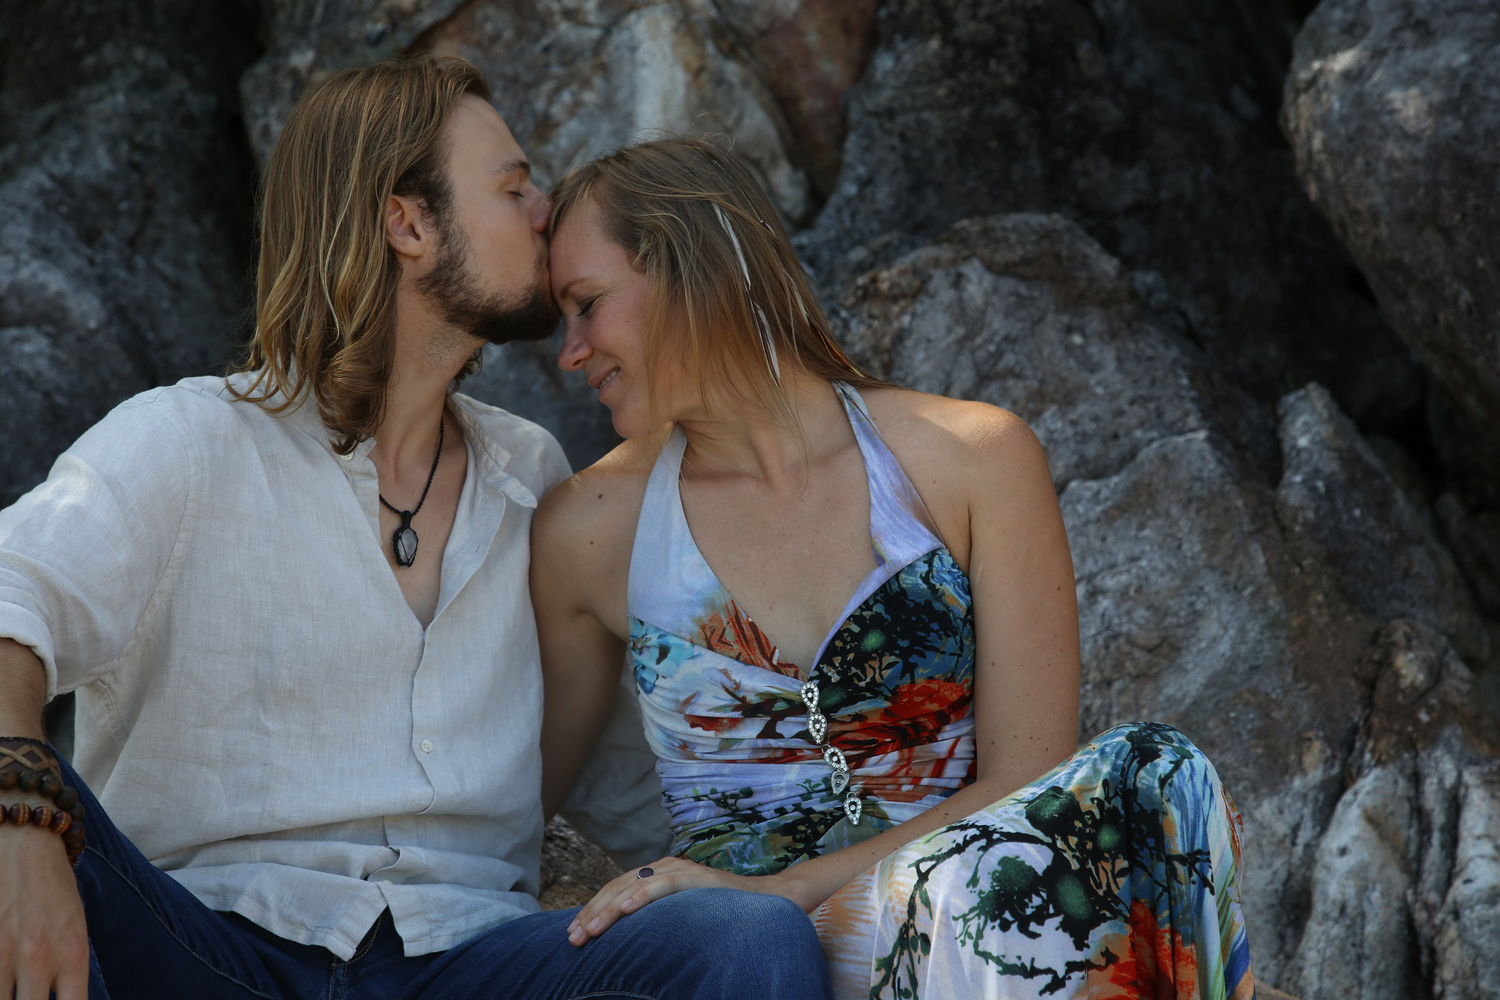 intimacy retreats for married couples